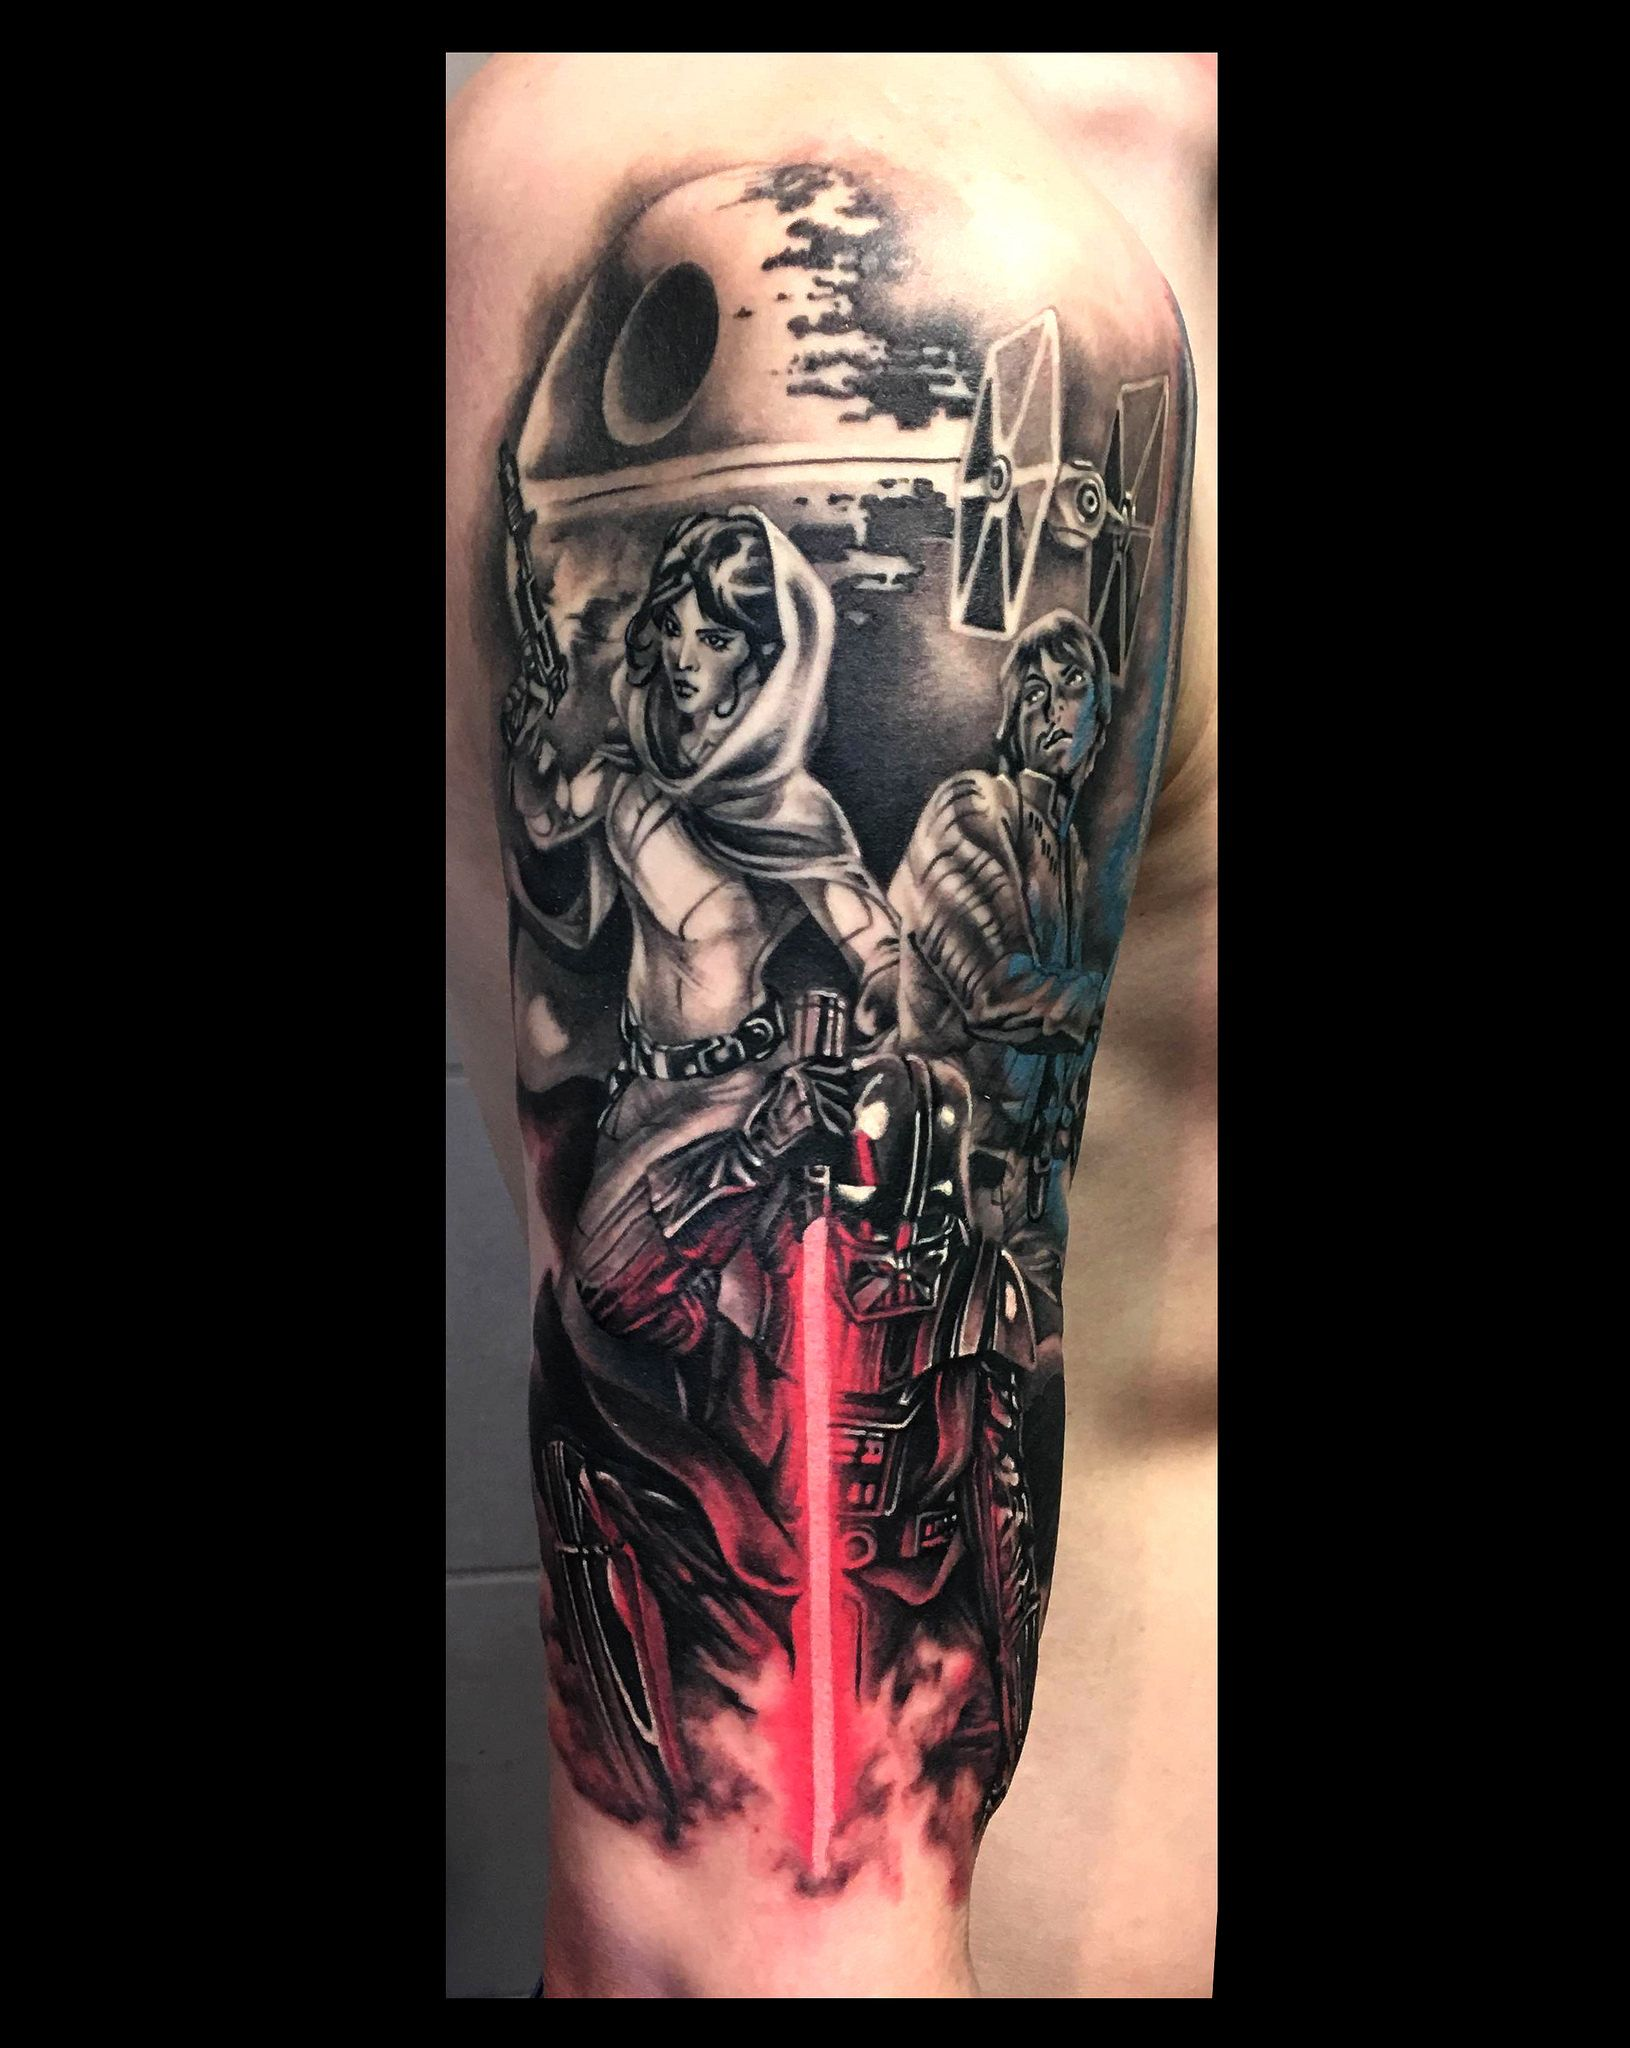 730fc9a80b STAR WARS | Japanese tattooer Magu. Specialized in original custom work.  Large variety of